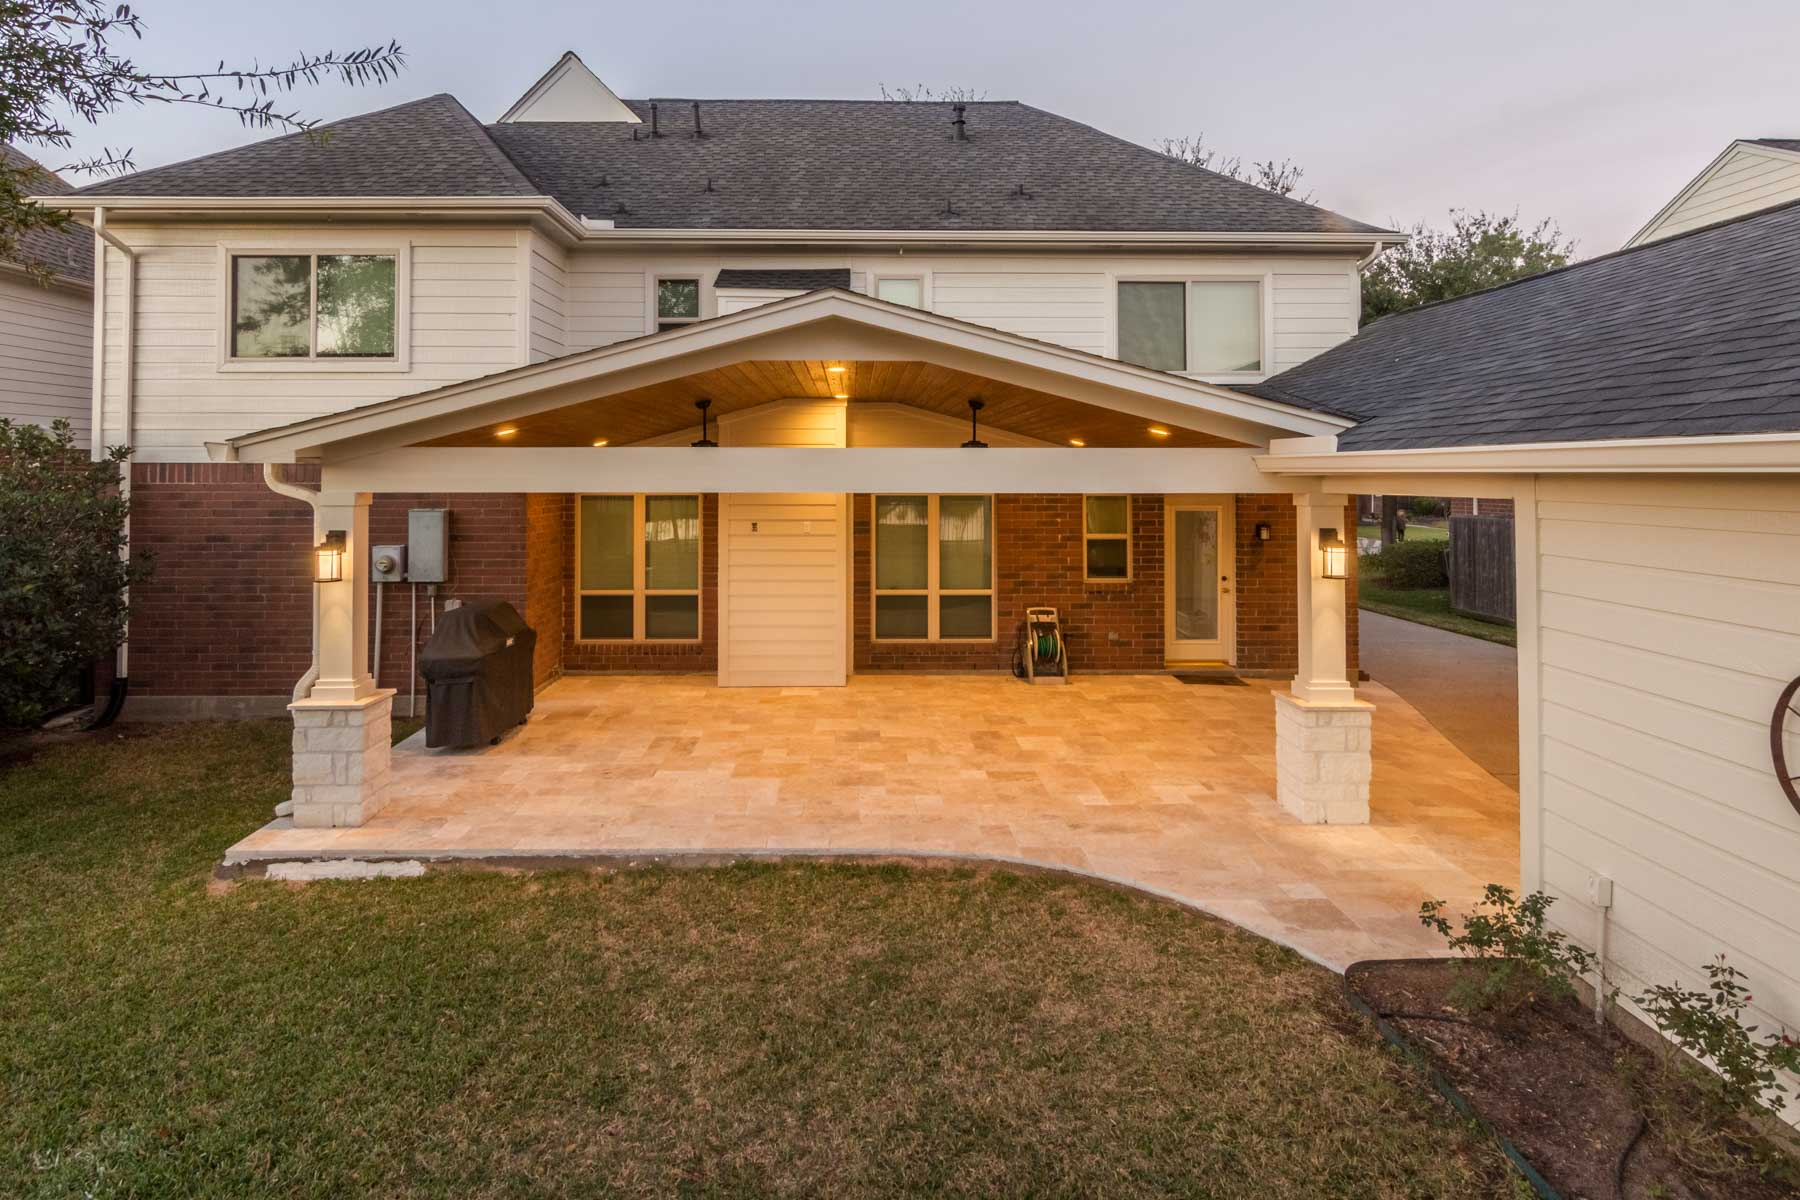 Patio Cover and Carport in Jersey Village - HHI Patio Covers on Open Patio Designs id=77070